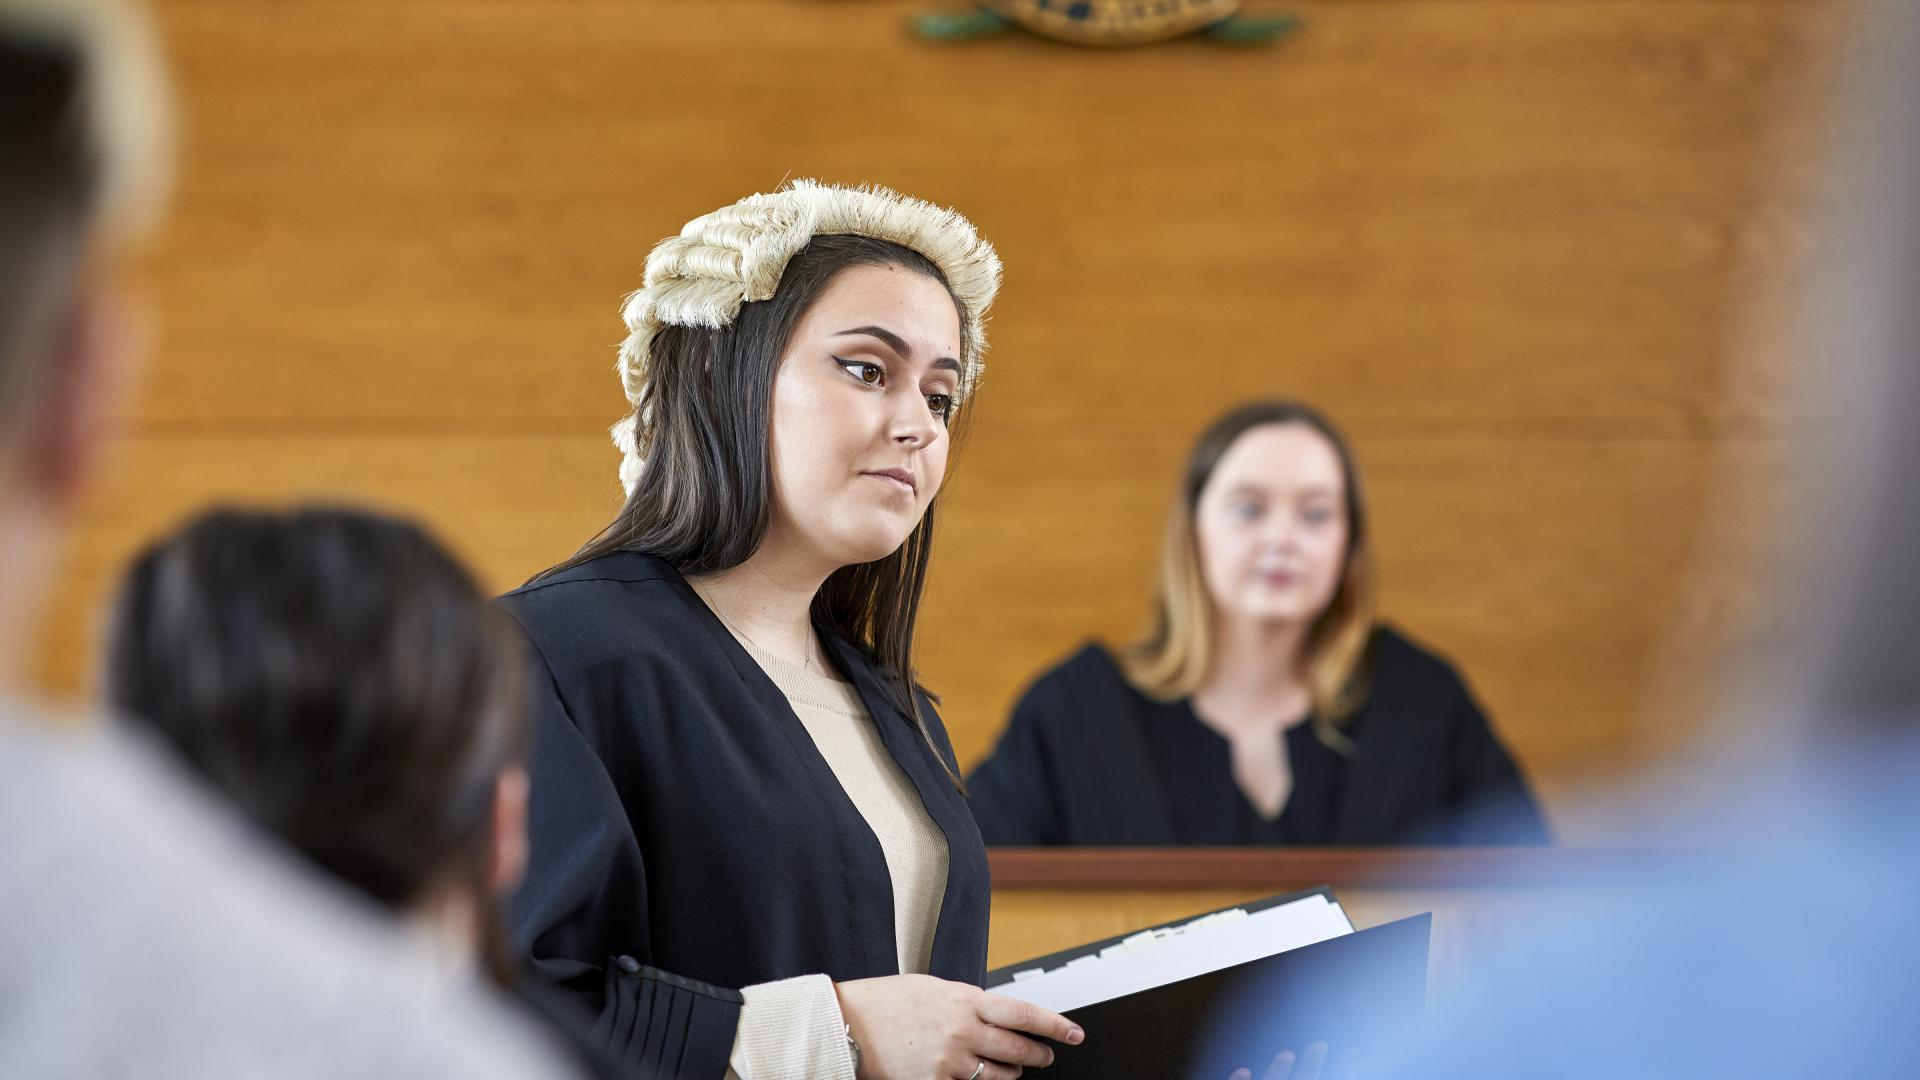 Students mooting in mock courtroom